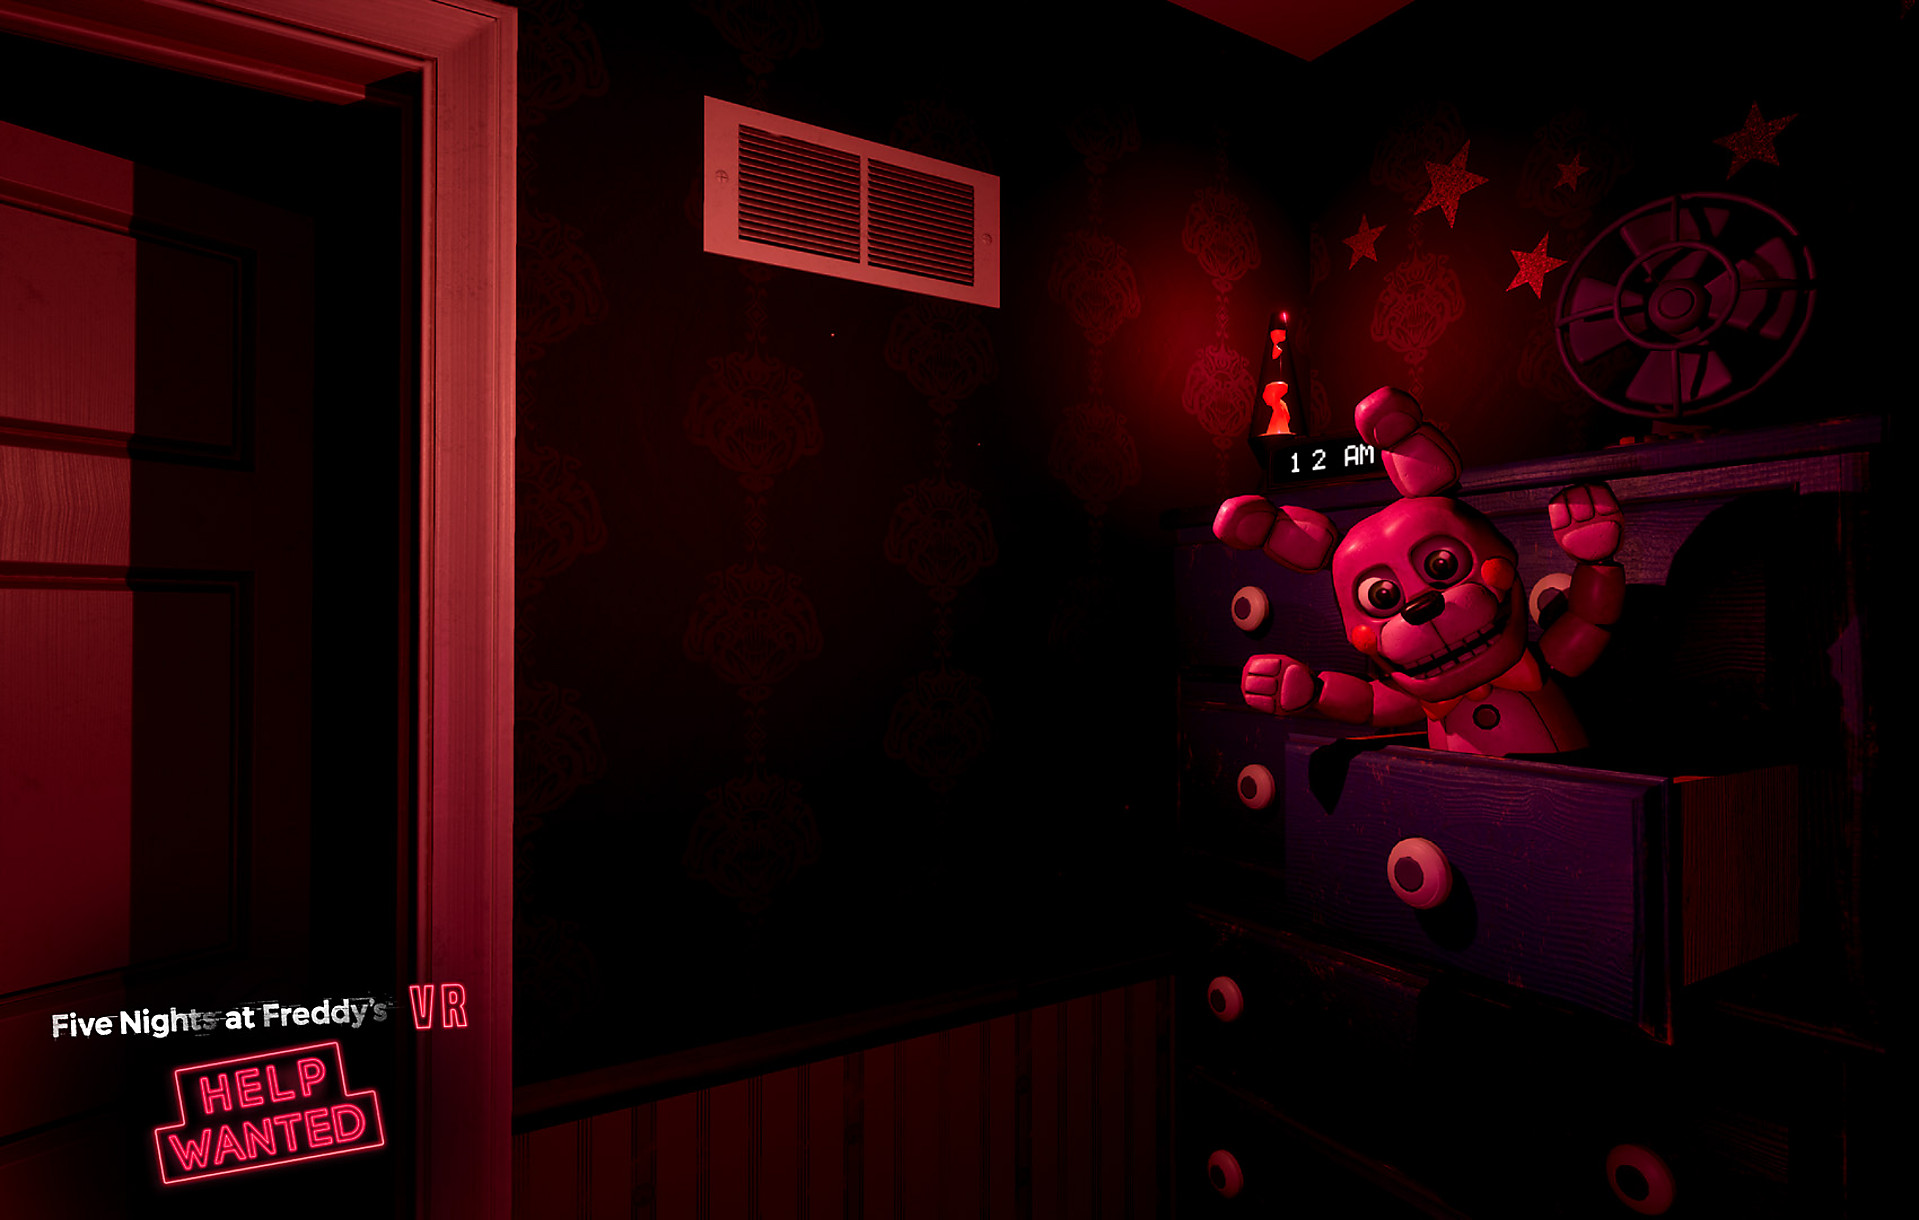 Five Nights at Freddy's VR: Help Wanted Game   PS4 - PlayStation